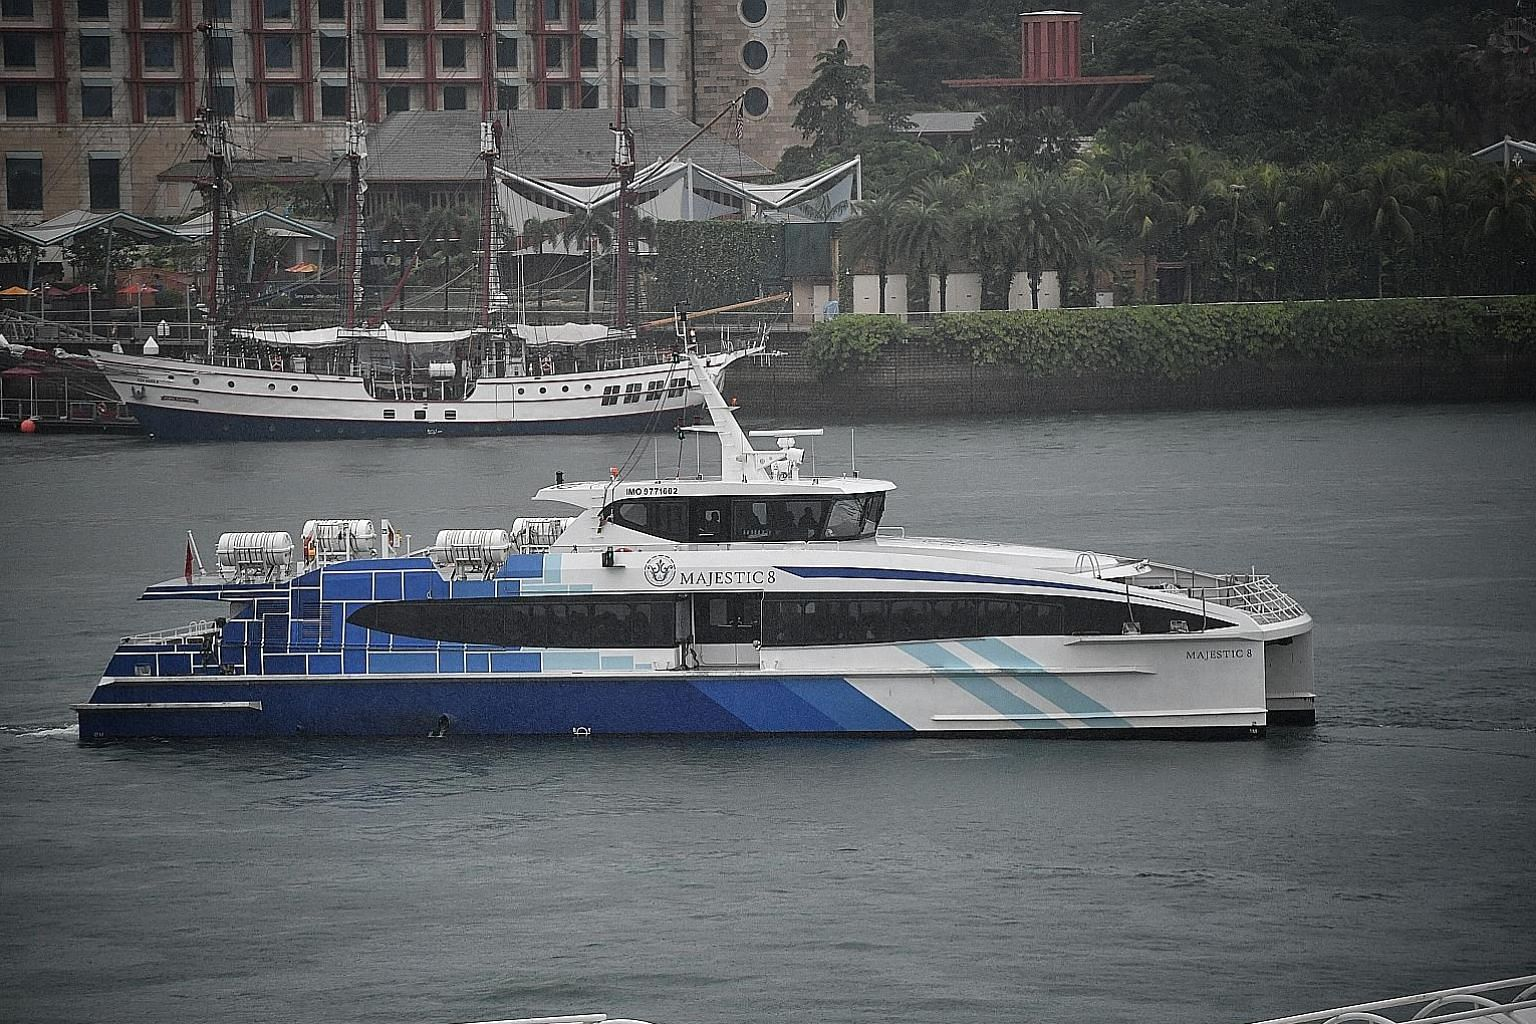 A Majestic Fast Ferry vessel leaving HarbourFront ferry terminal. Changi Airport's tie-up with the firm involves ferries shuttling between Batam Centre and Tanah Merah terminals, and buses from the terminal to the airport.